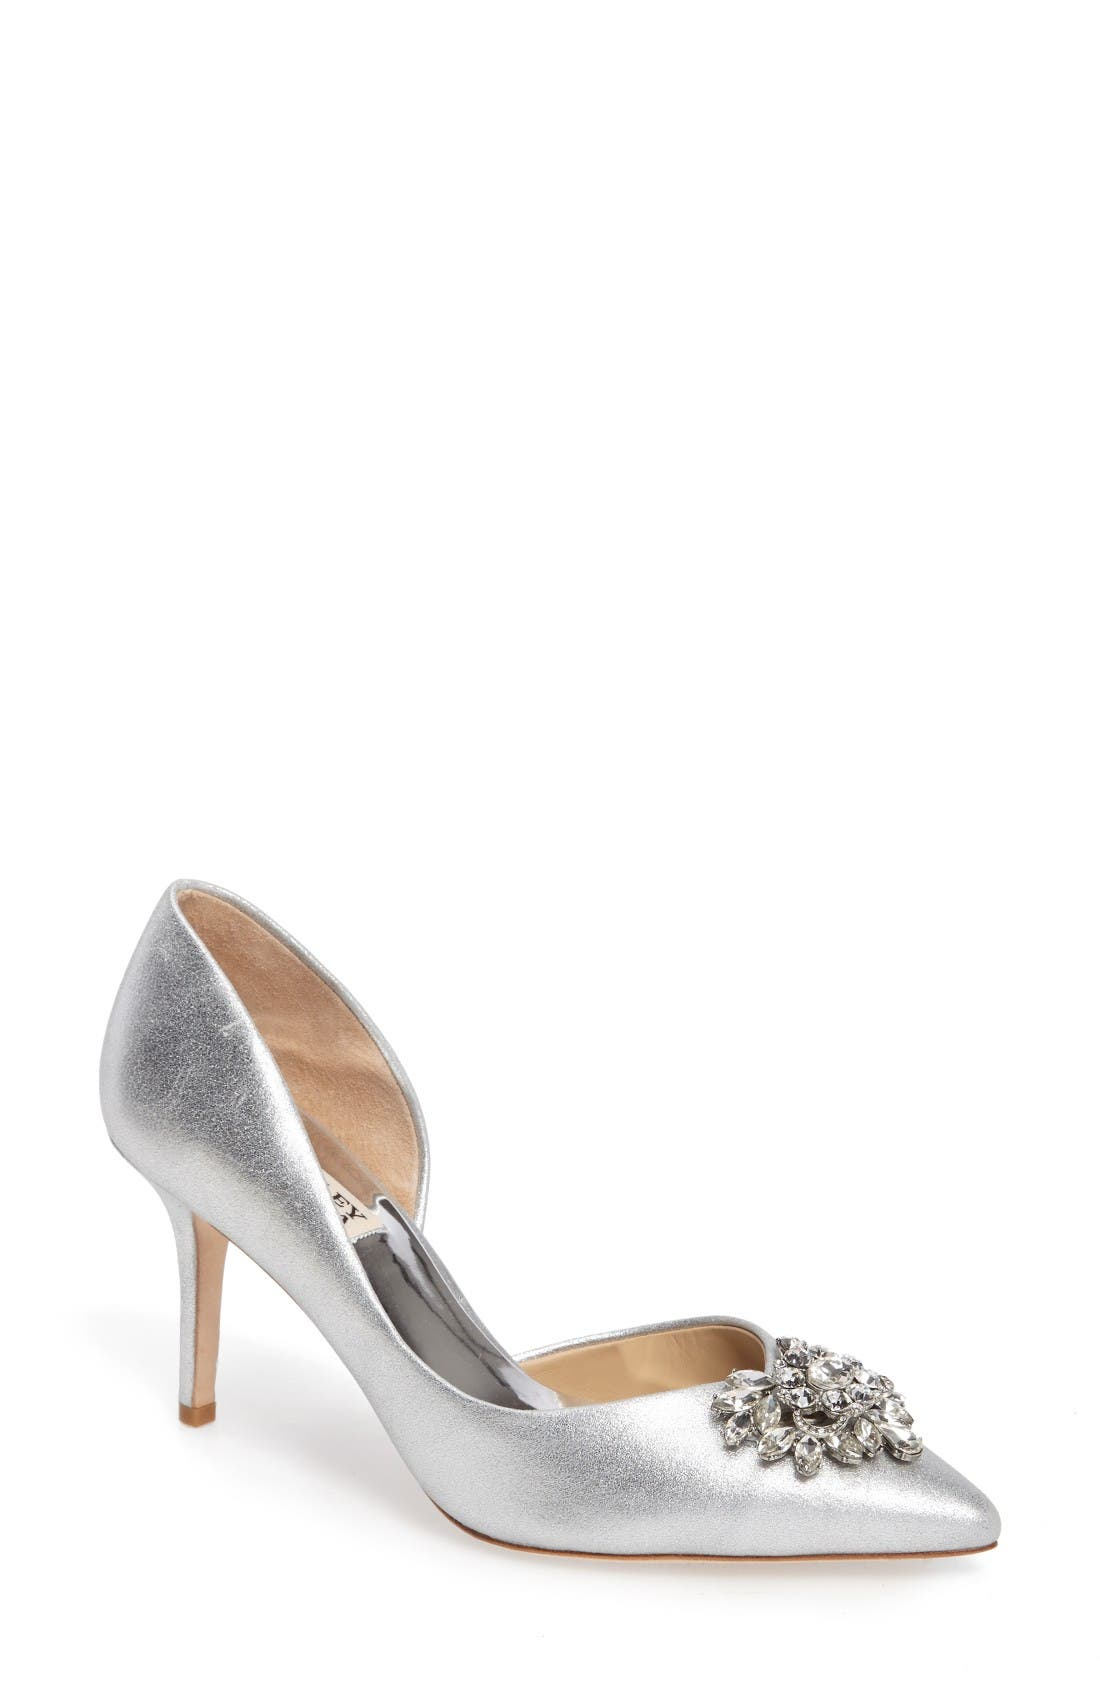 BADGLEY MISCHKA Baltic Pointy Toe Half d'Orsay Embellished